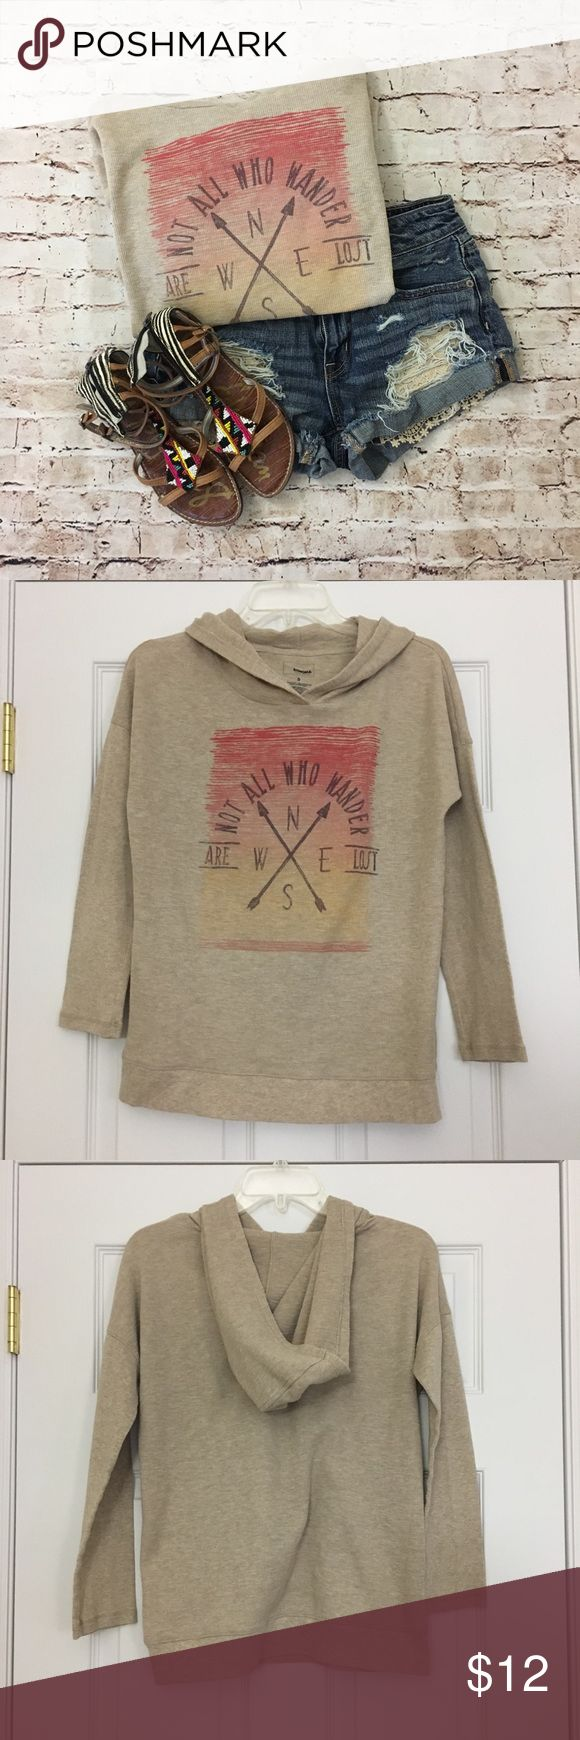 Not all who wander are lost thermal hoodie Super cute and comfortable tan thermal hooded sweatshirt. EUC. Size small. Not too snug. Sonoma from Kohl's. Sonoma Tops Sweatshirts & Hoodies